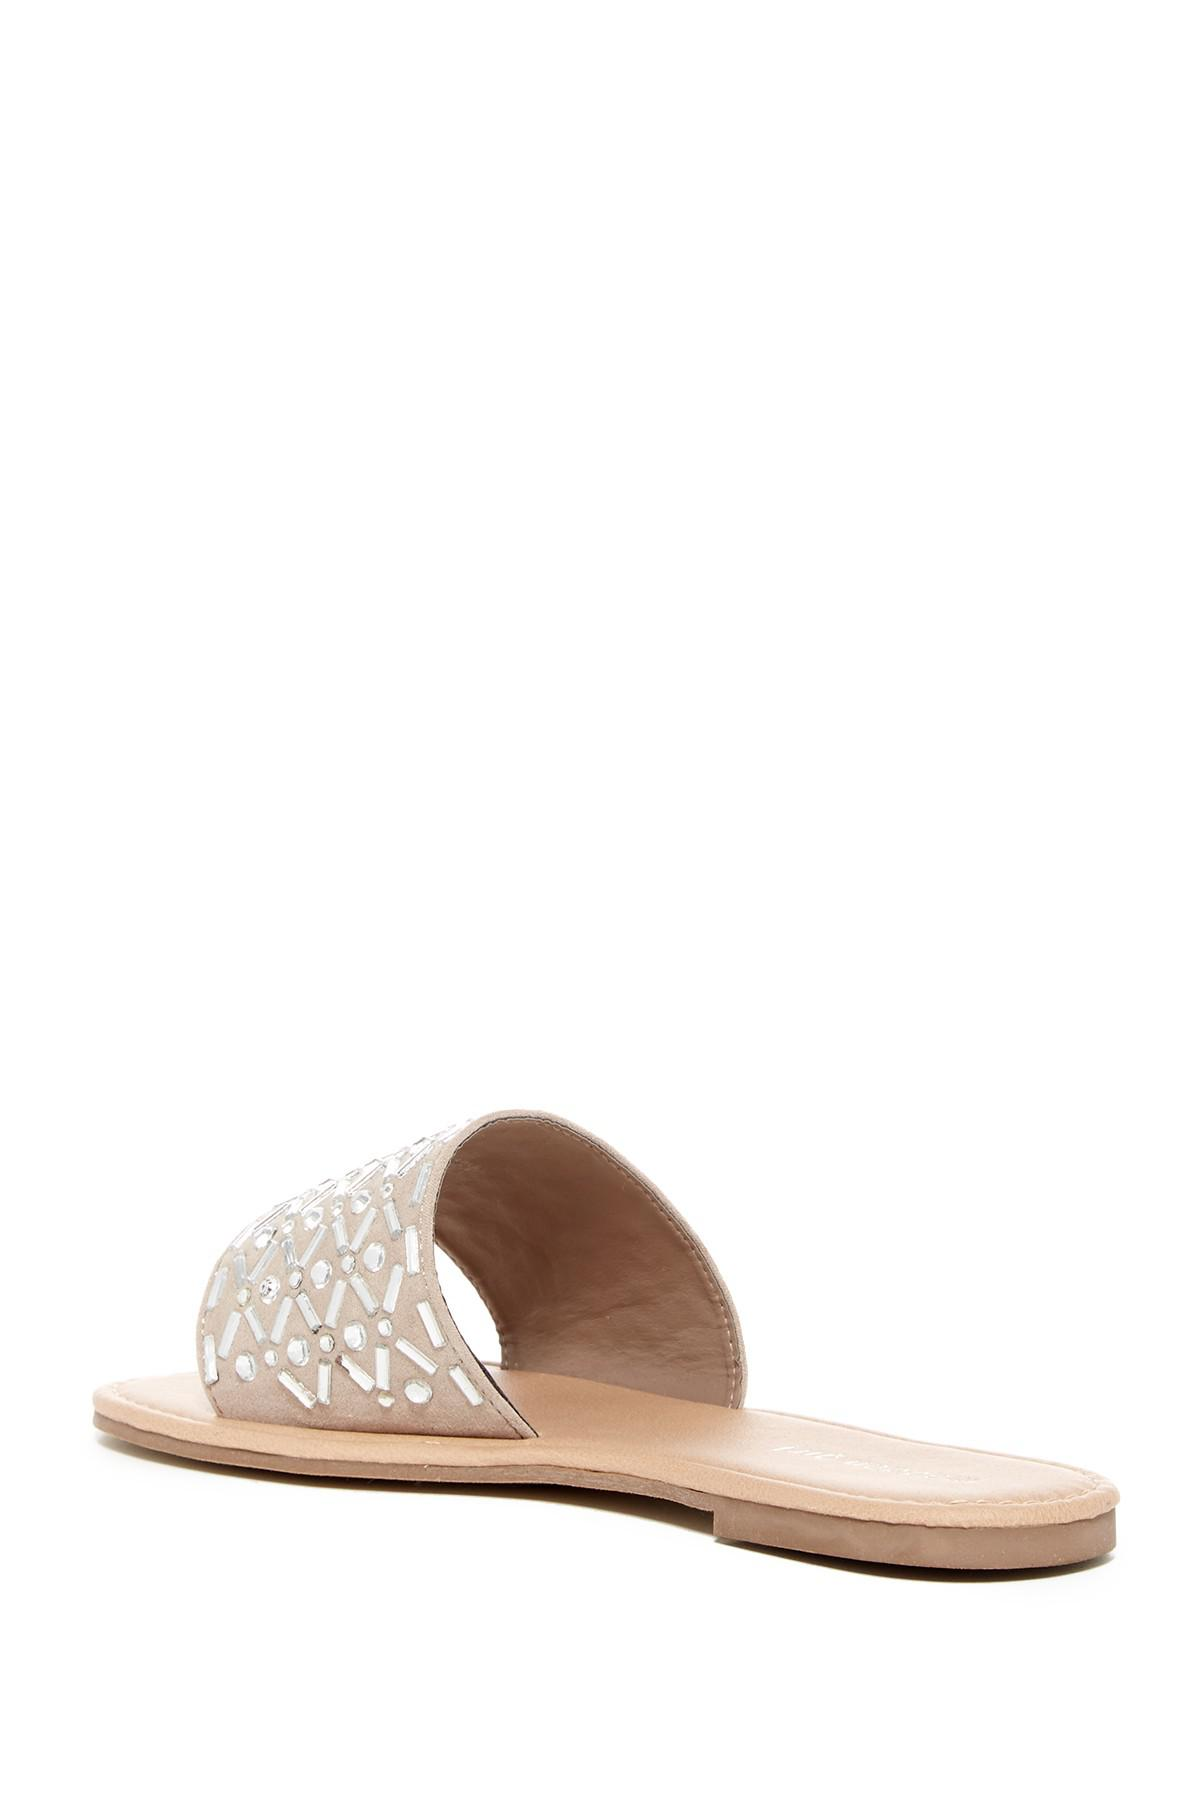 Best Nude Shoes House Of Fraser